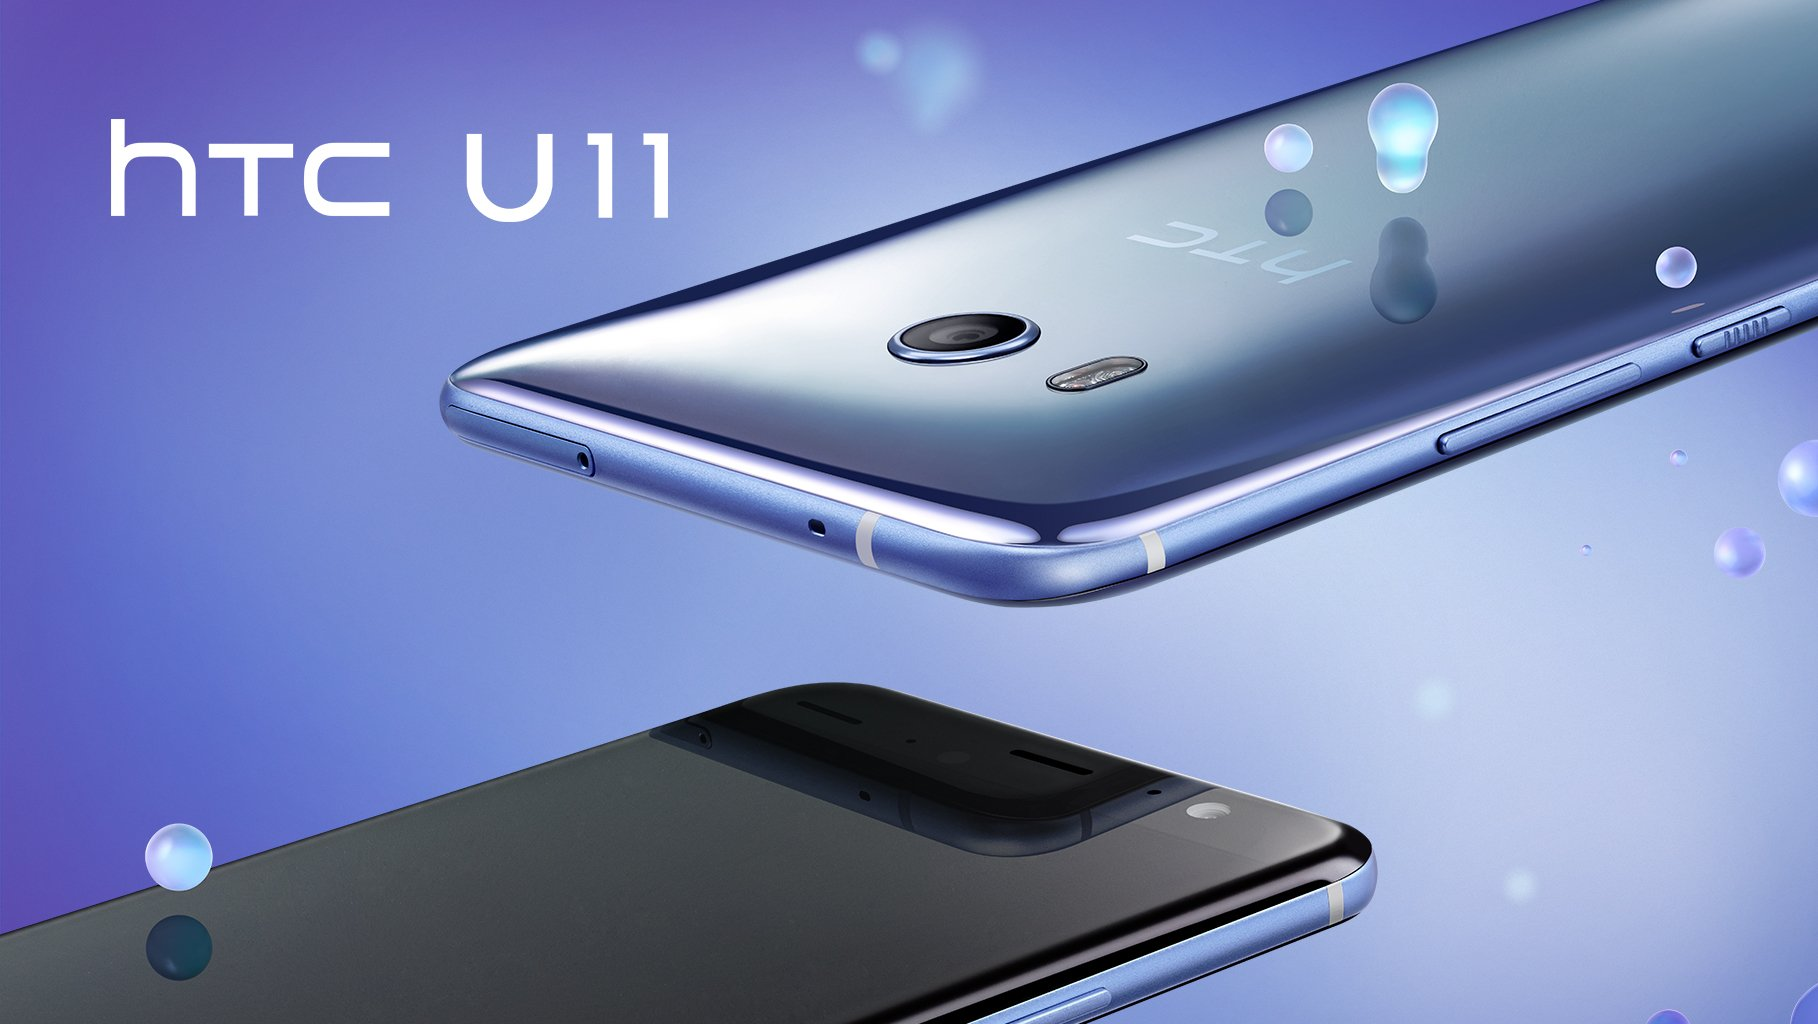 HTC U11 4 New iPhone Set To Be Slow Vs HTC U11 & Samsung S8